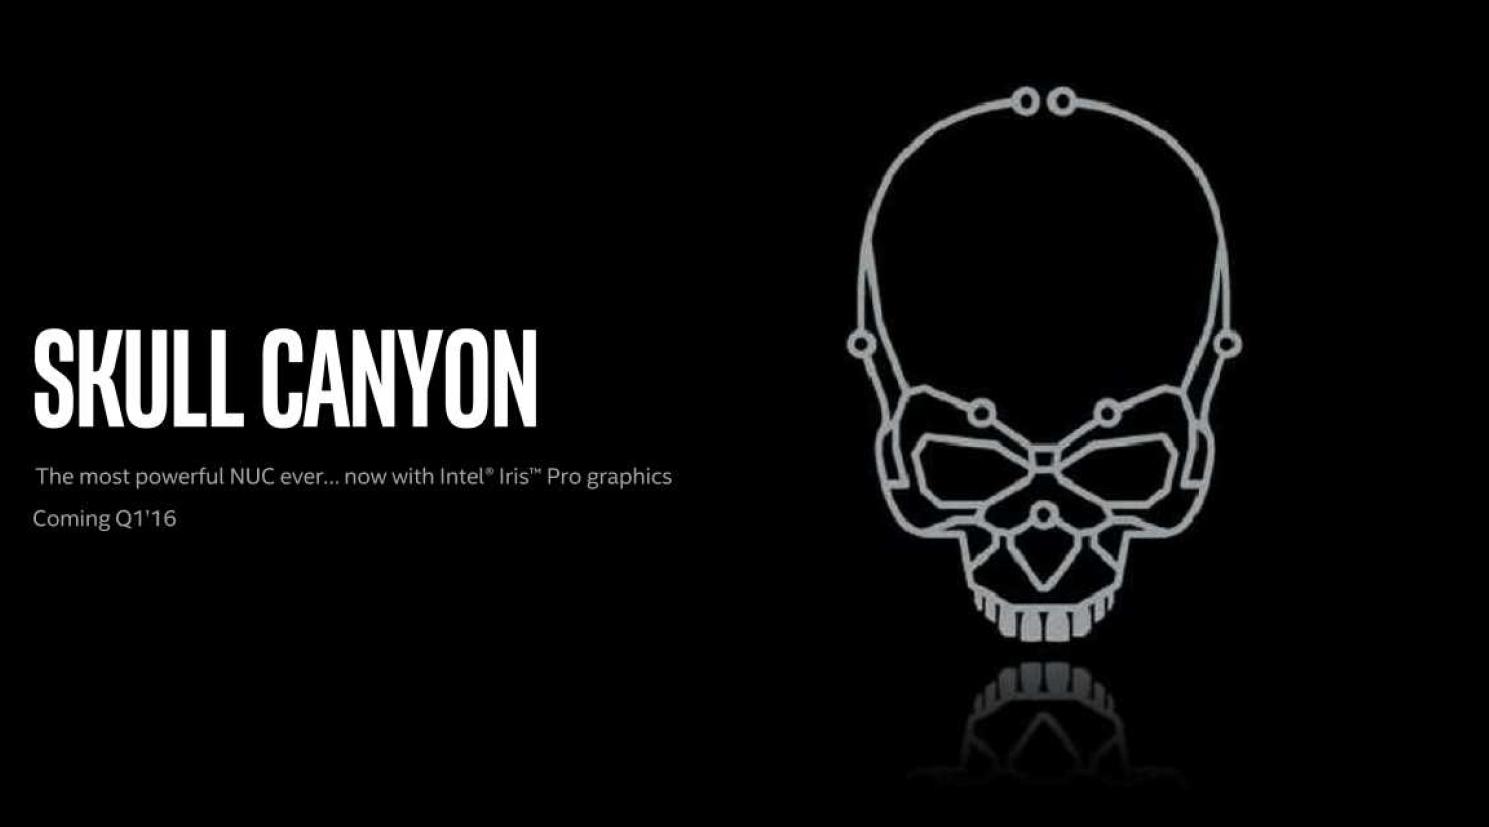 Intel-Skull-Canyon-NUC